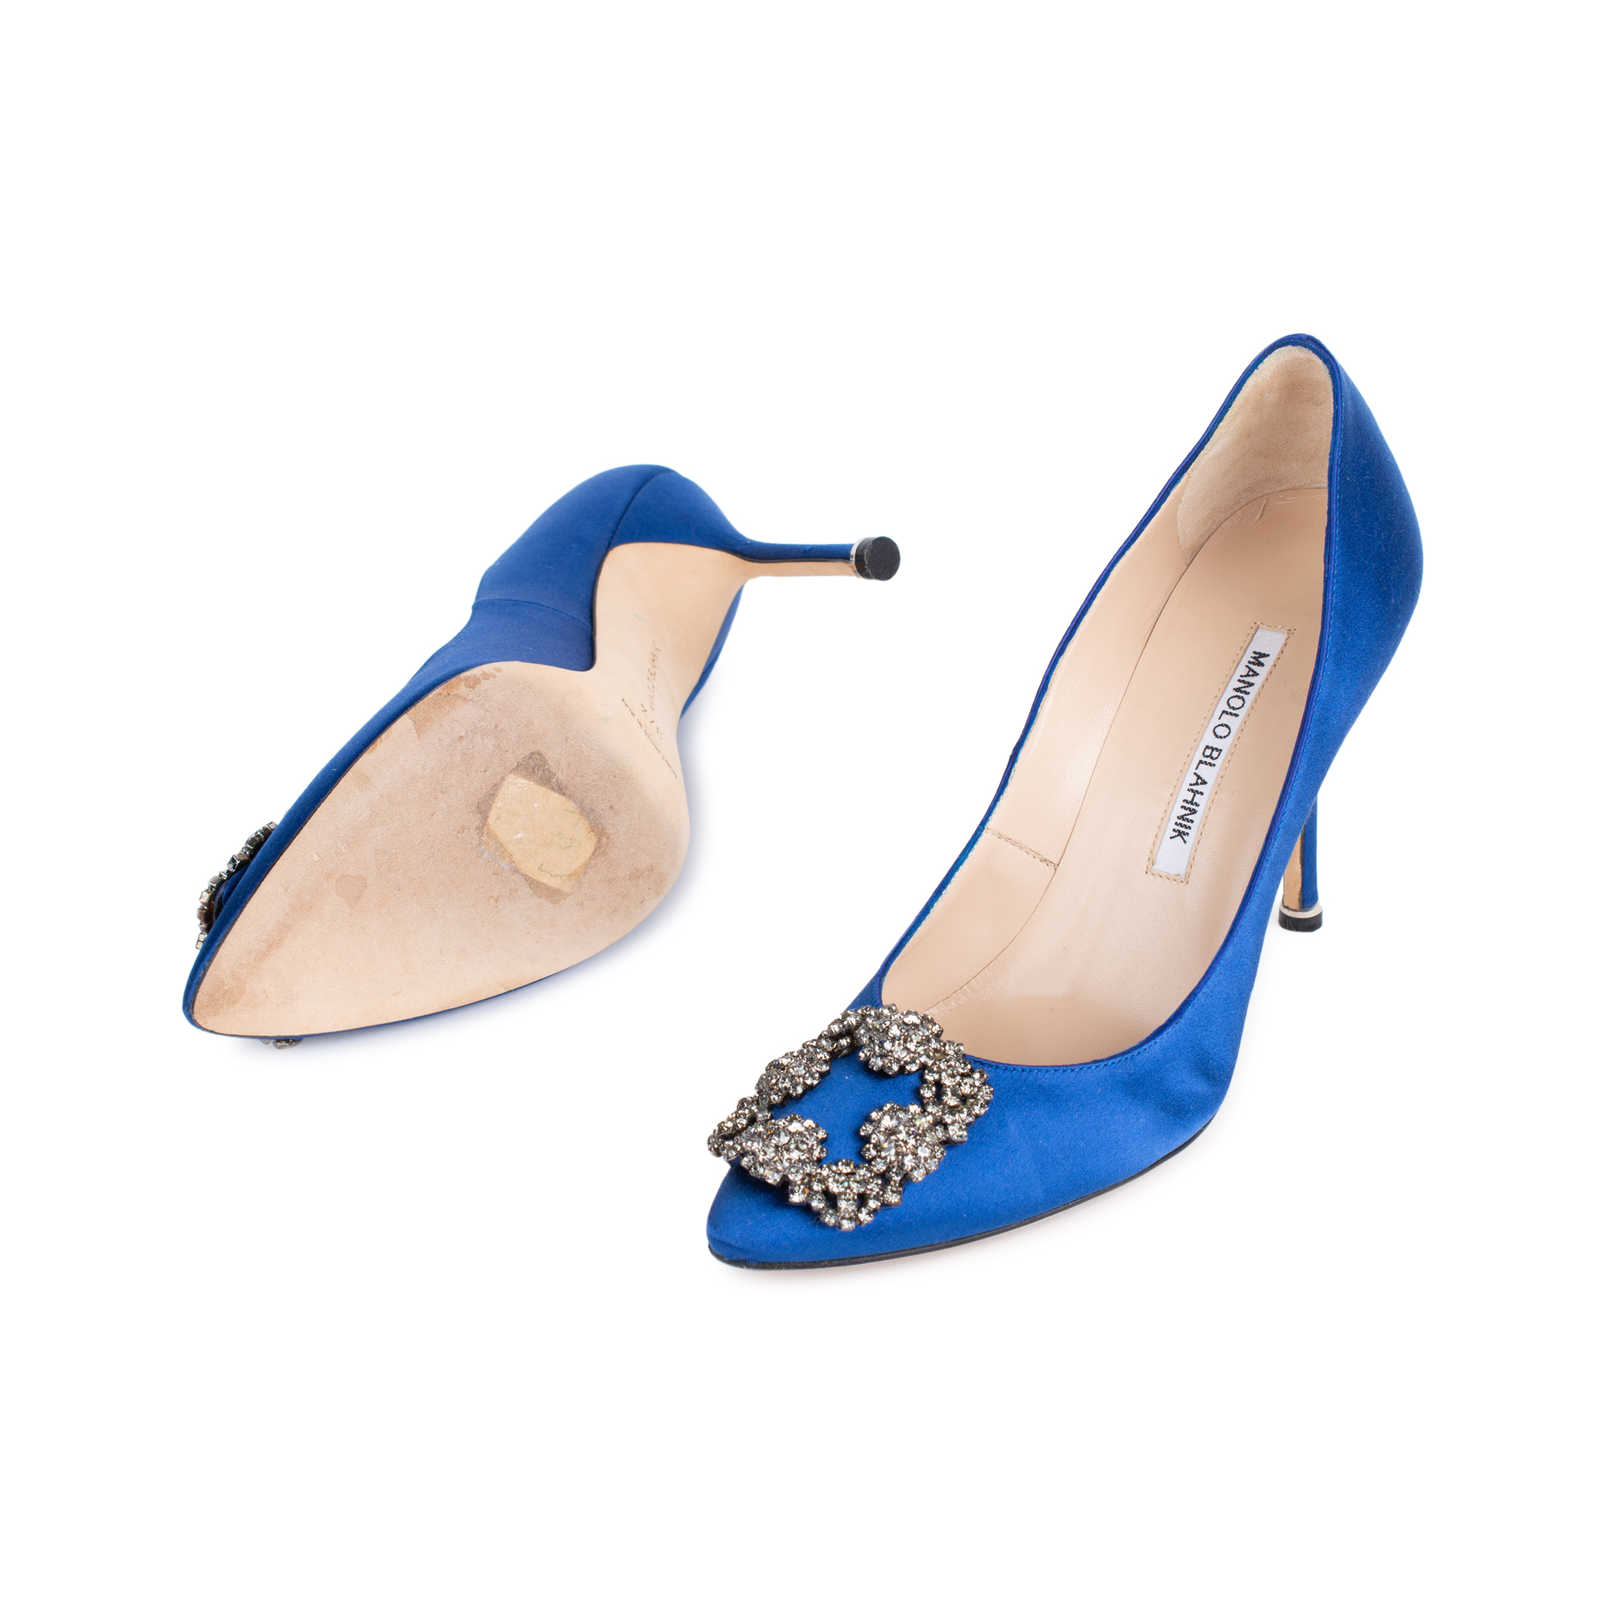 c8294fe534e5 ... Authentic Second Hand Manolo Blahnik Blue Hangisi Pumps (PSS-544-00011)  ...